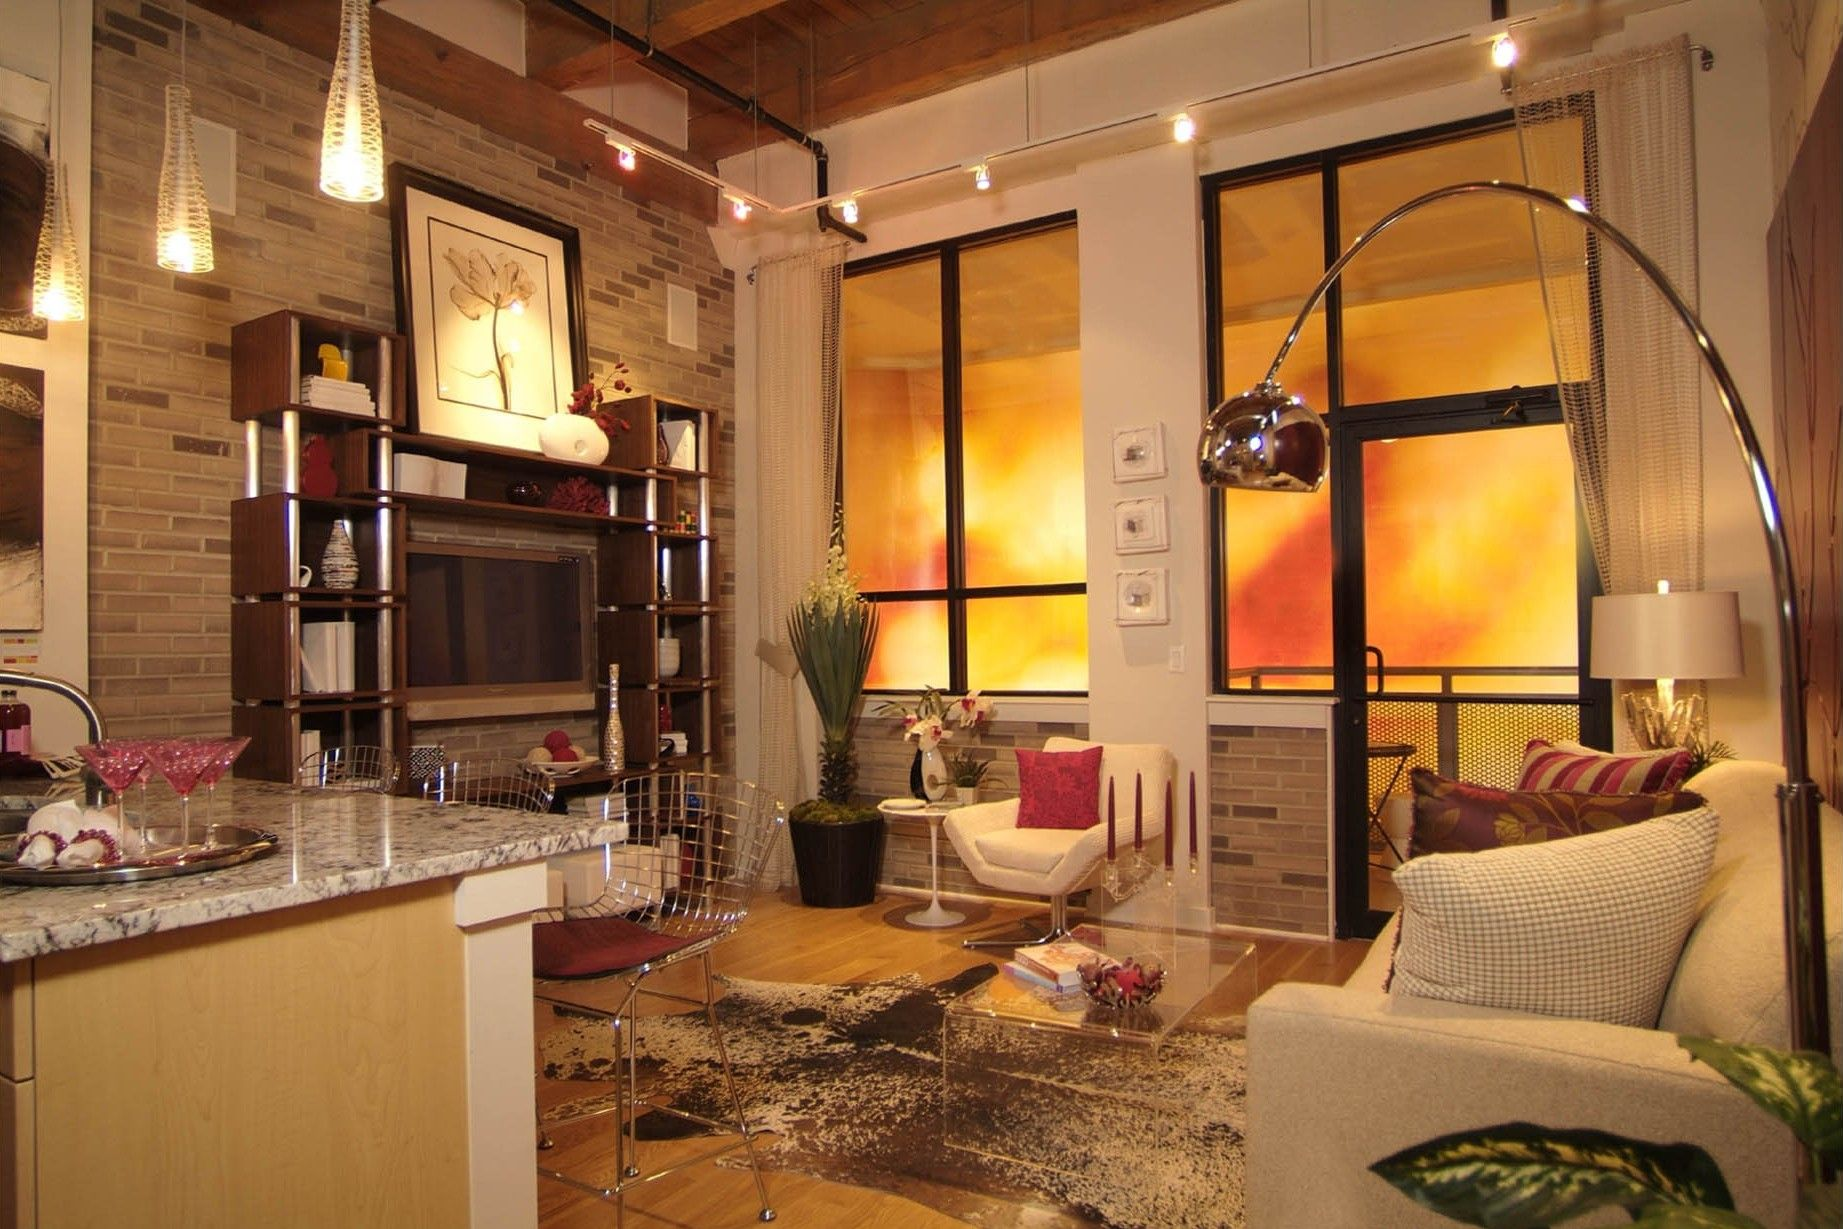 loft apartments with brick walls | chicago lofts: is loft condo